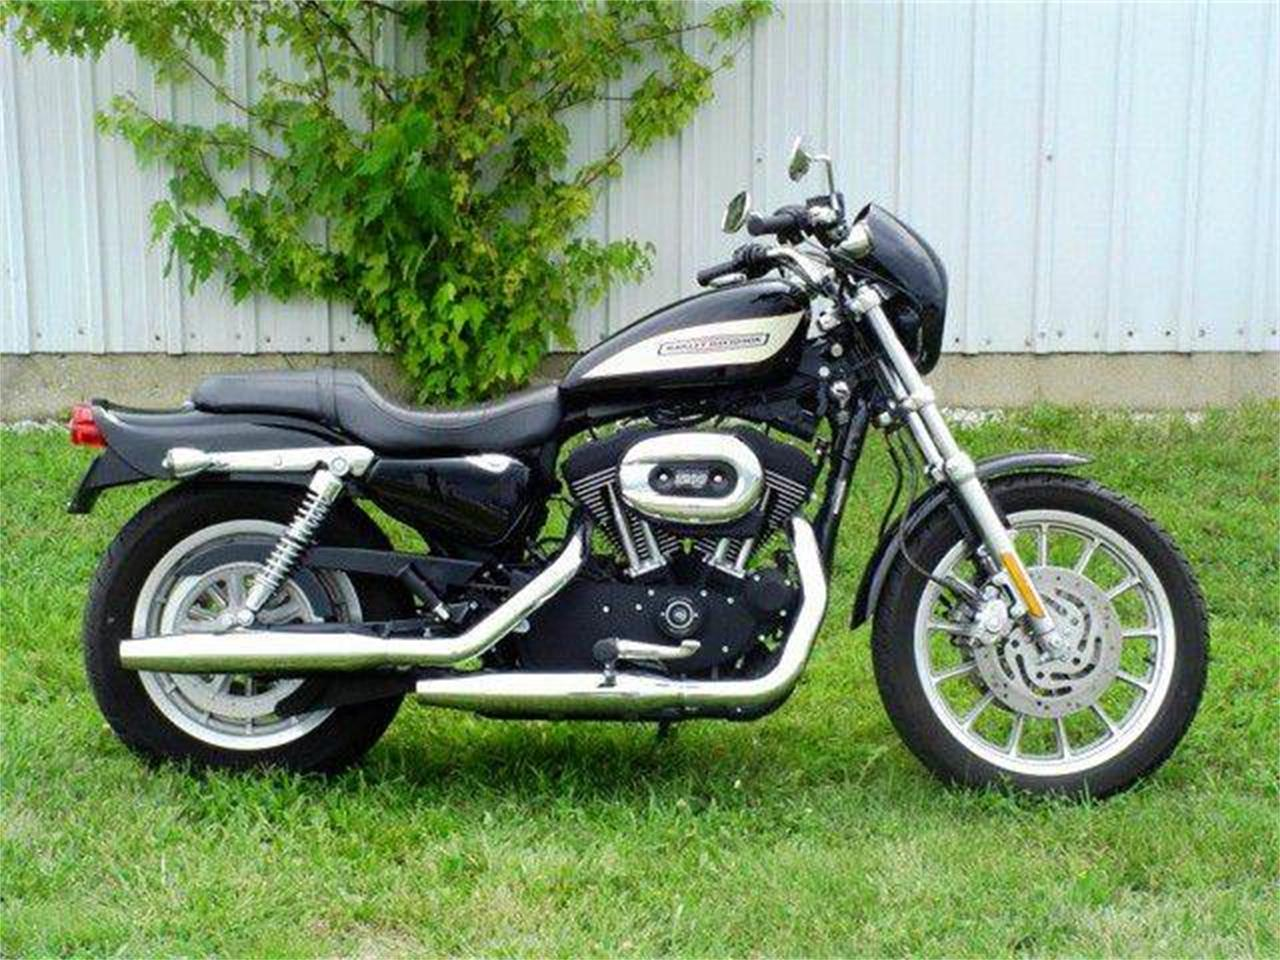 Large Picture of '07 Sportster - $7,995.00 - Q5AM